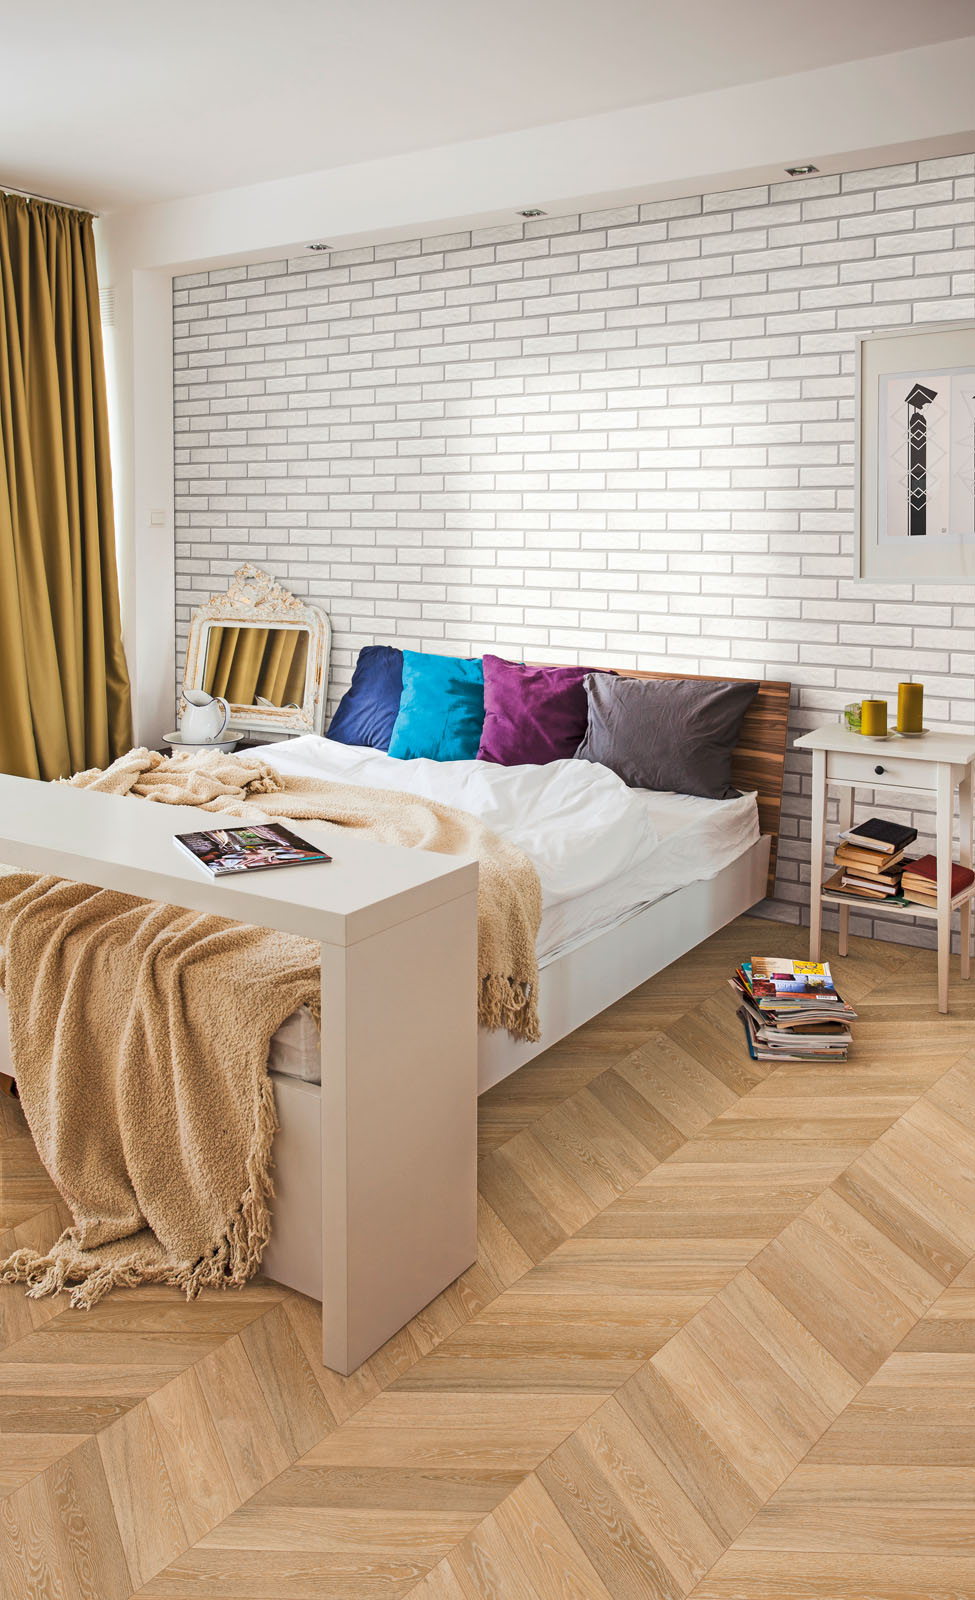 Chevron Size Woodchoice Wood Effect Tiles Ragno